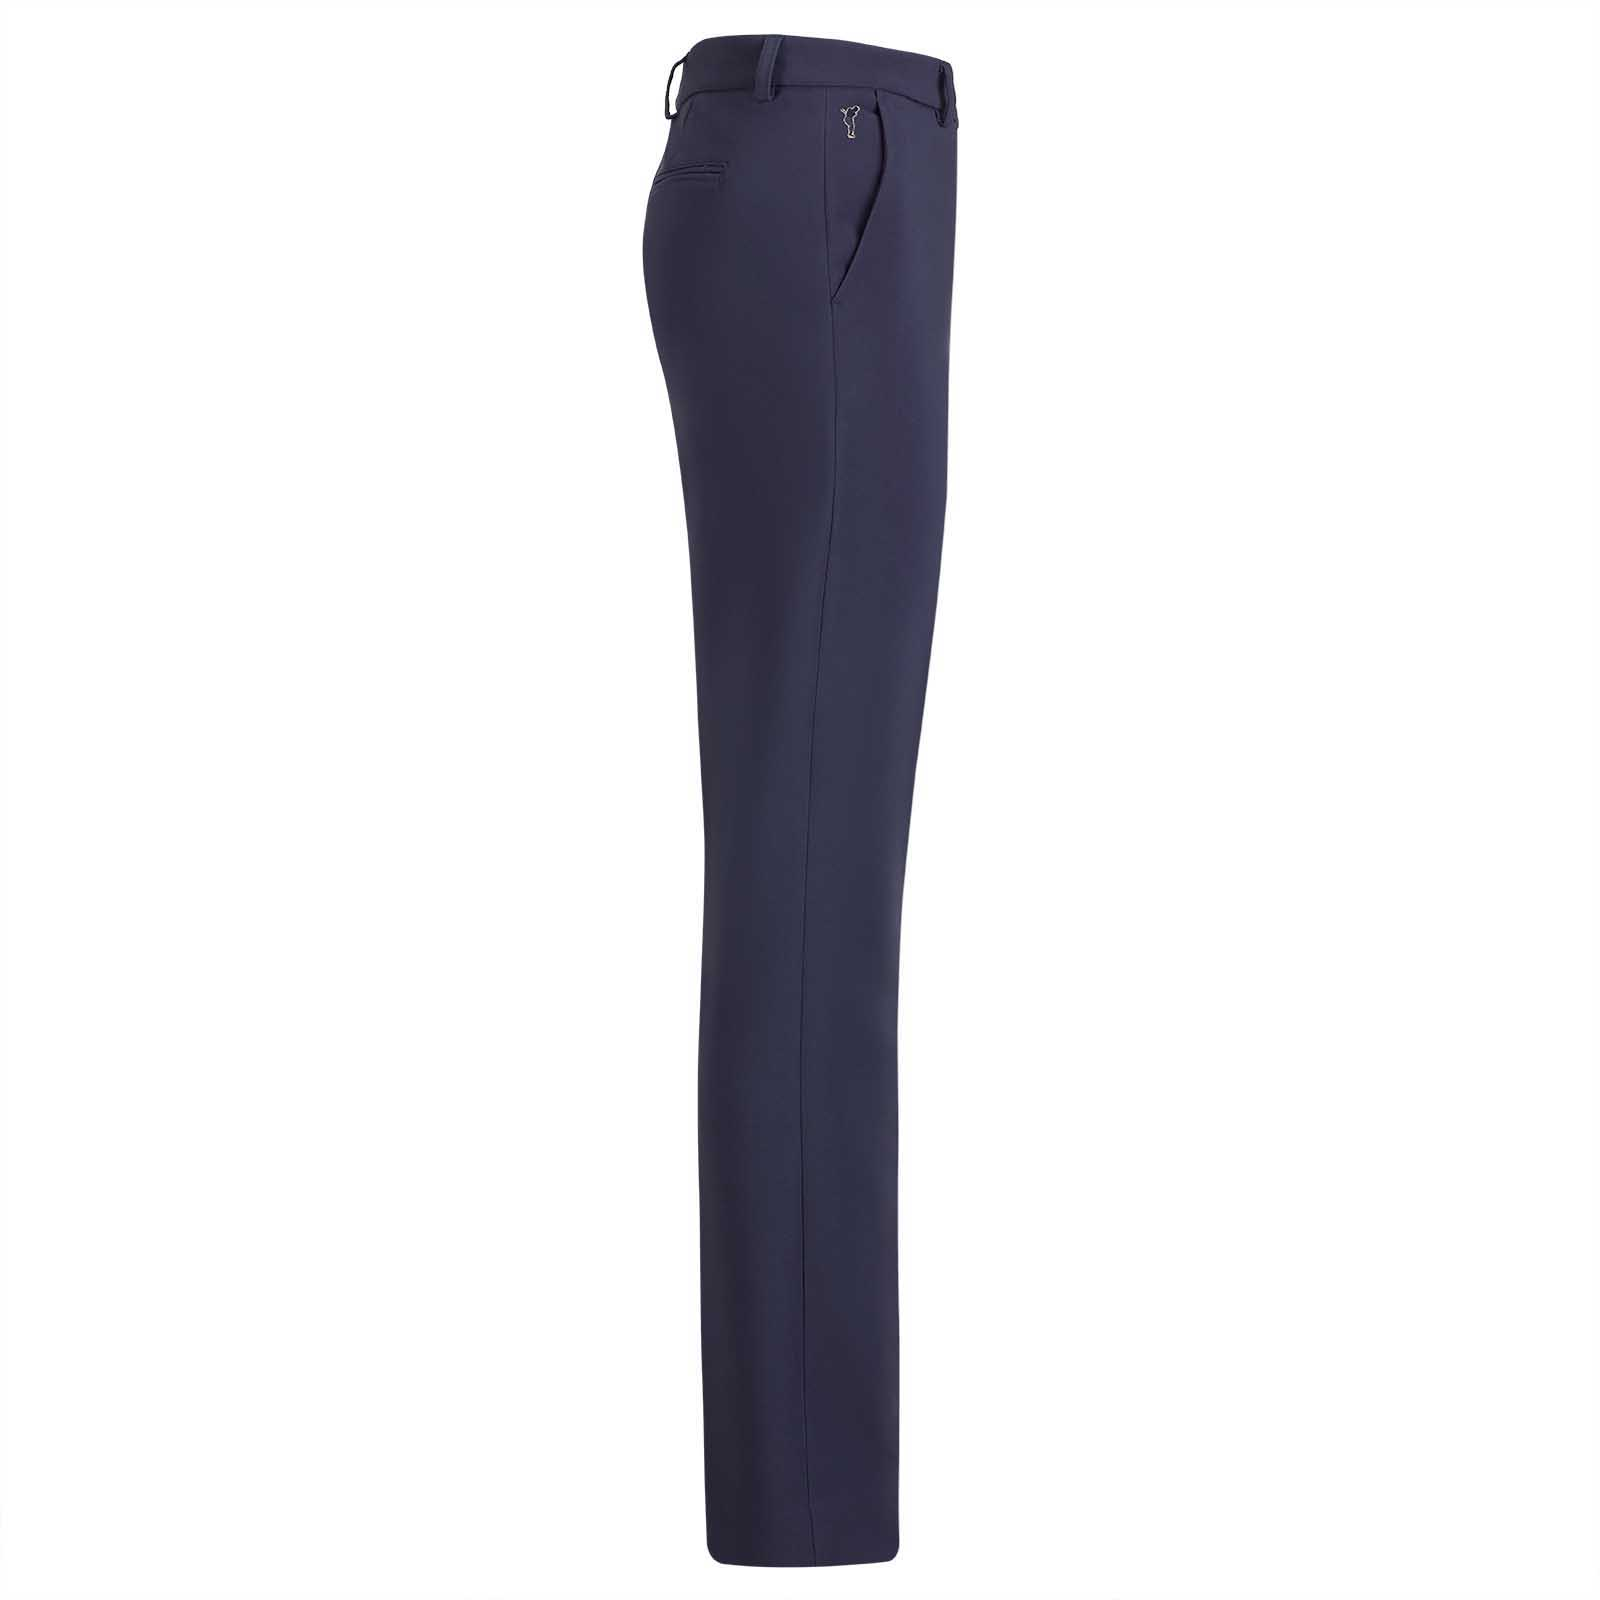 Lange 4-Way-Stretch Performance Damen Golfhose